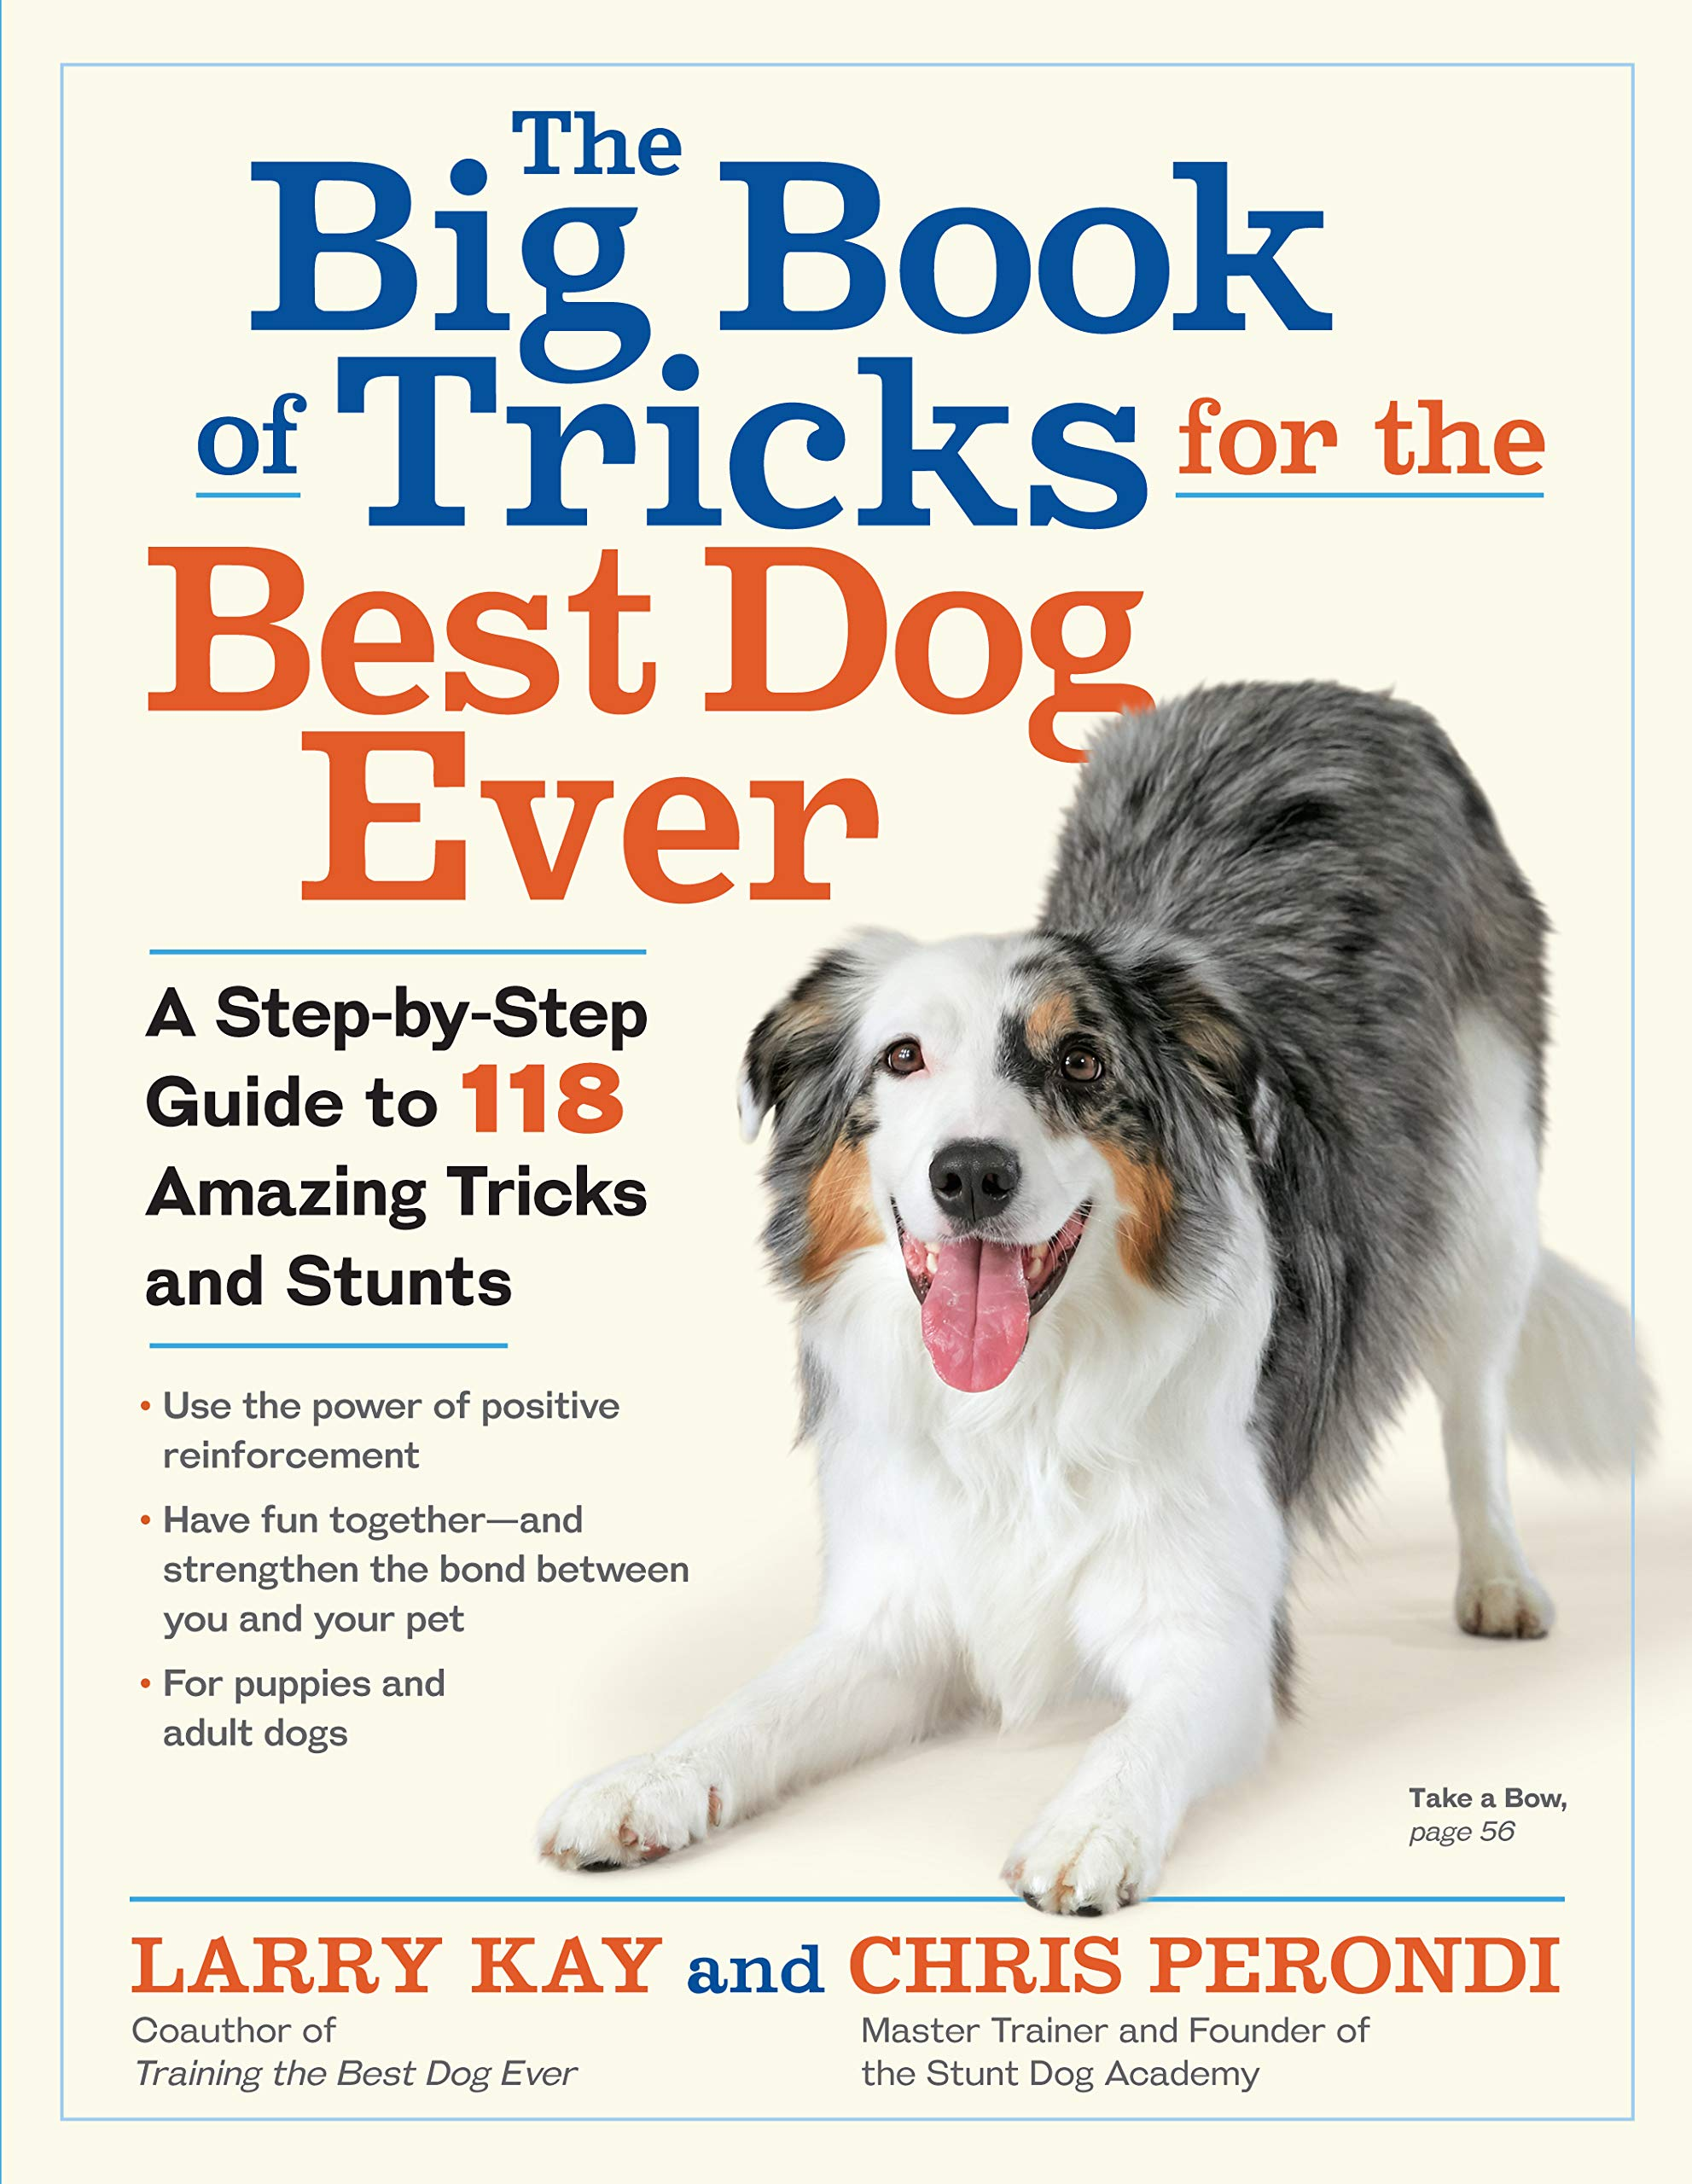 The-Big-Book-of-Tricks-for-the-Best-Dog-Ever-A-Step-by-Step-Guide-to-118-Amazing-Tricks-and-Stunts